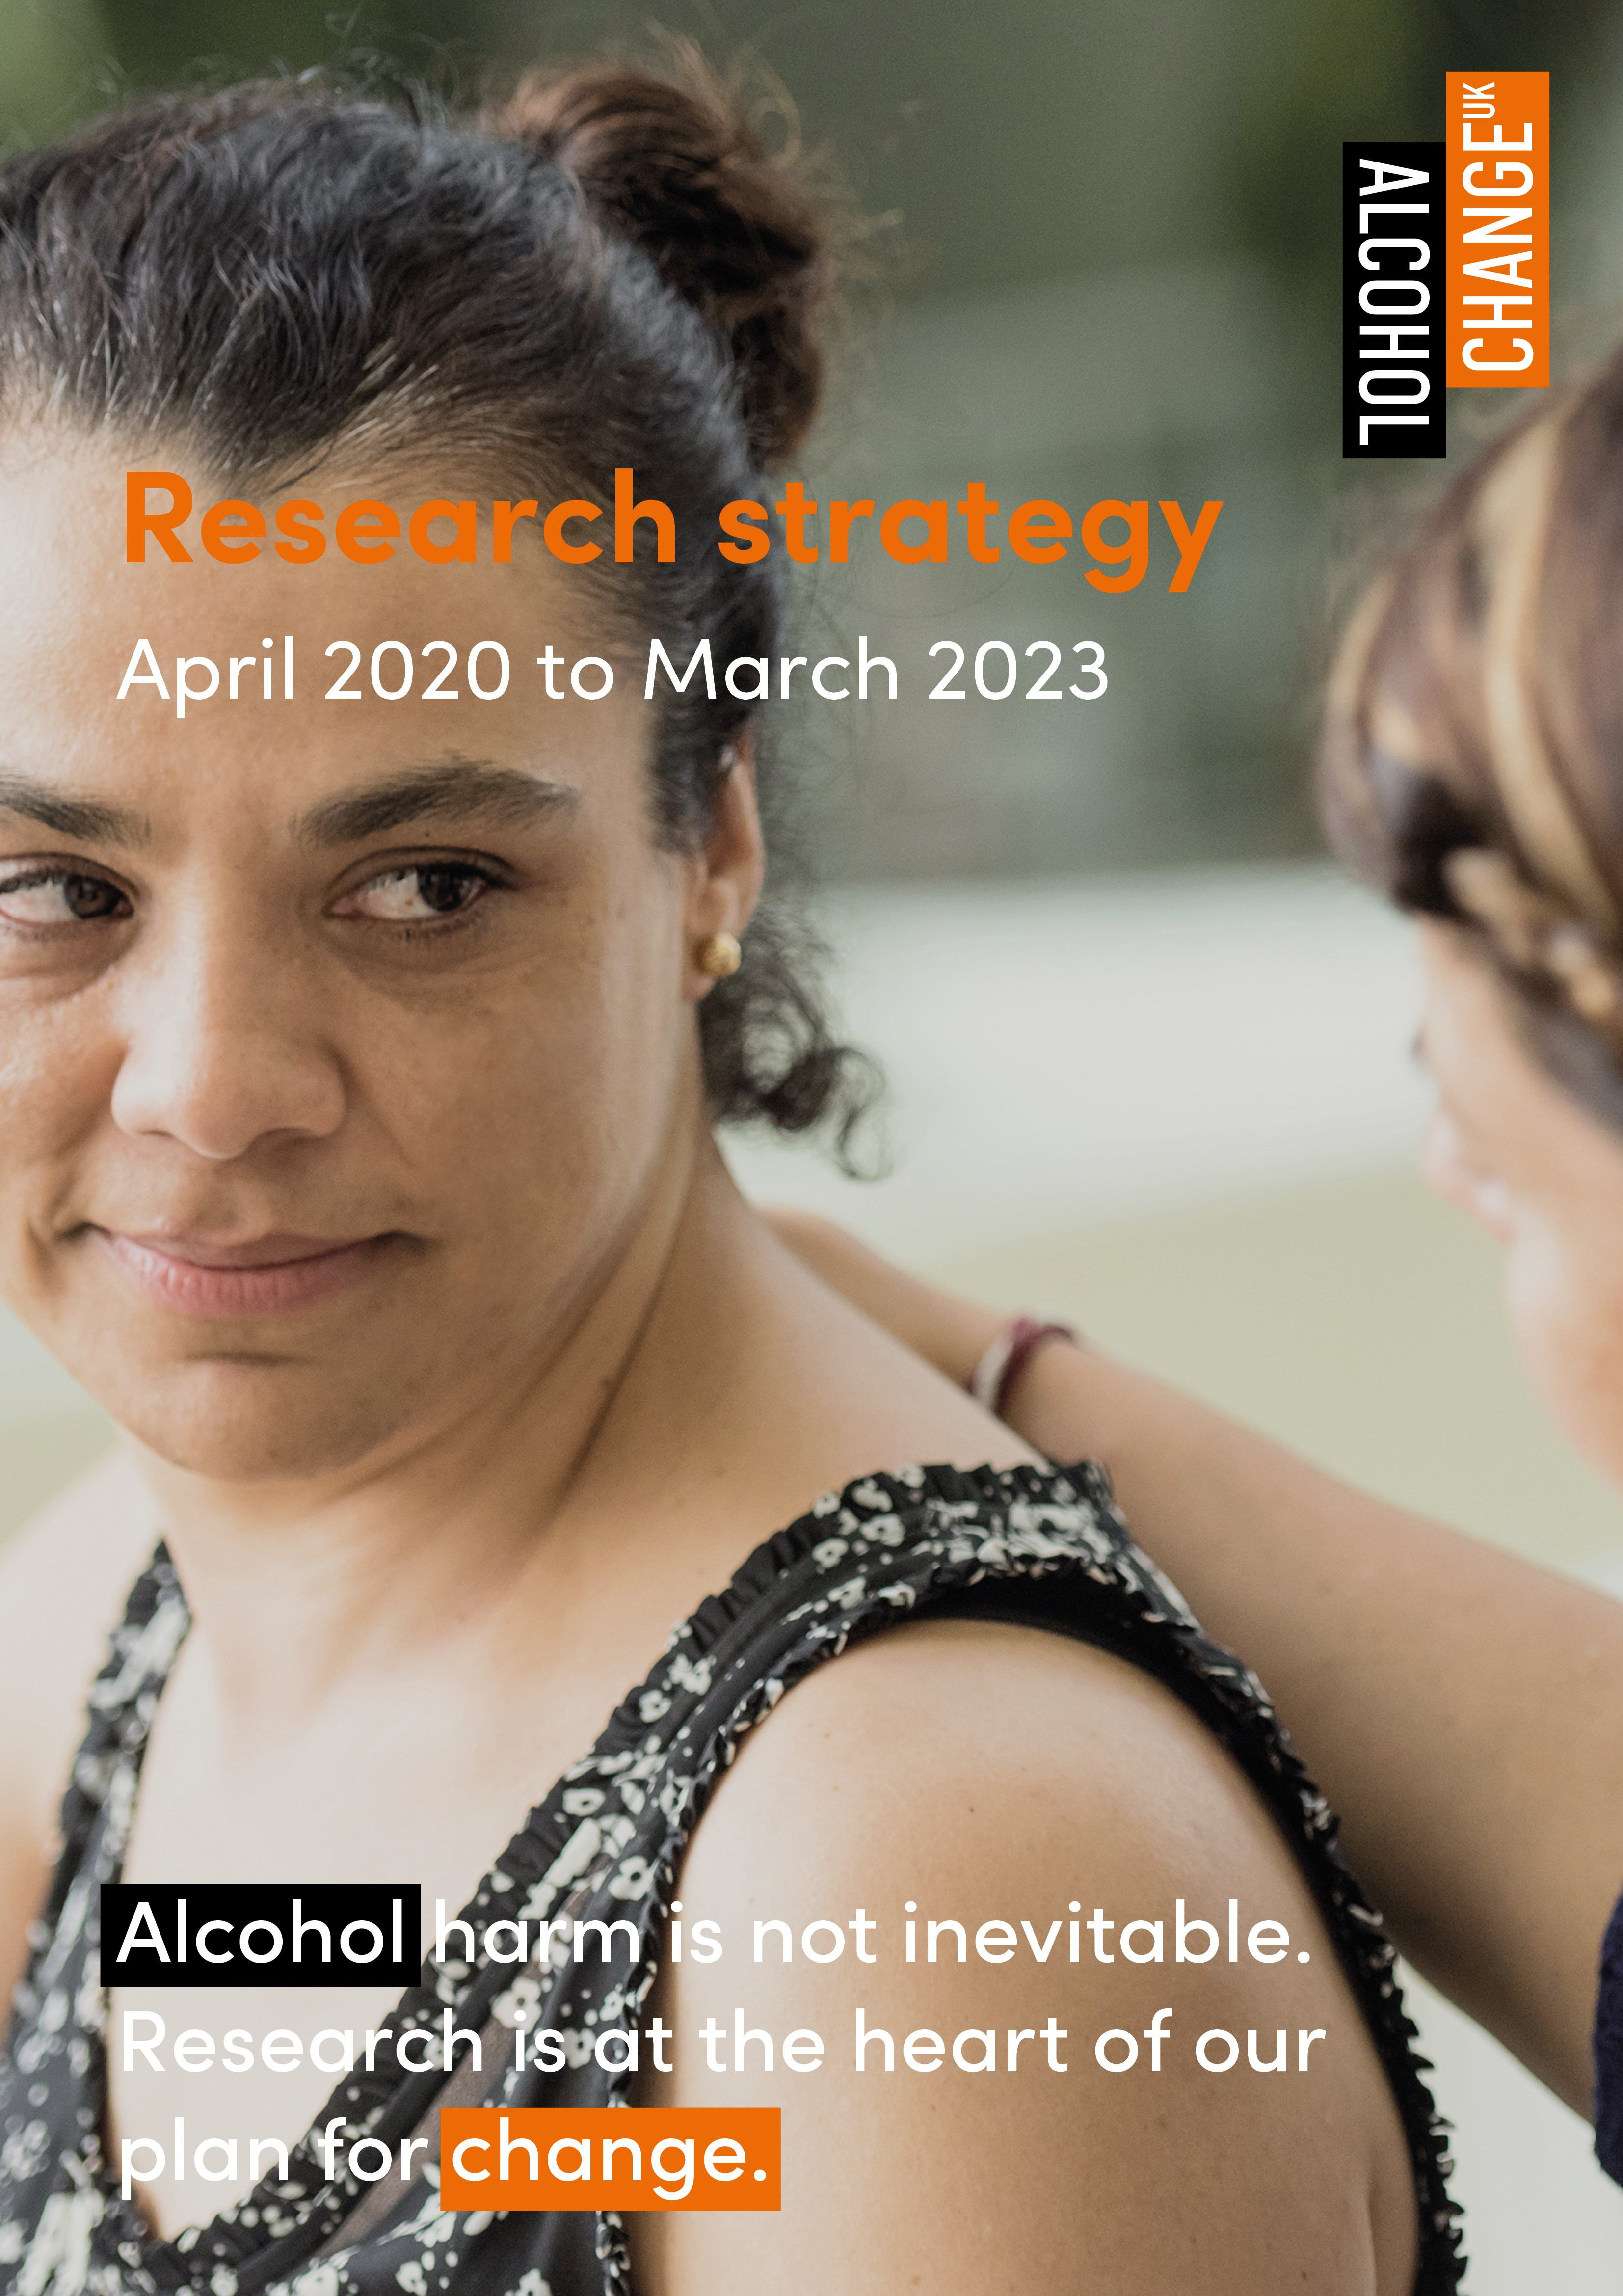 Research strategy cover image